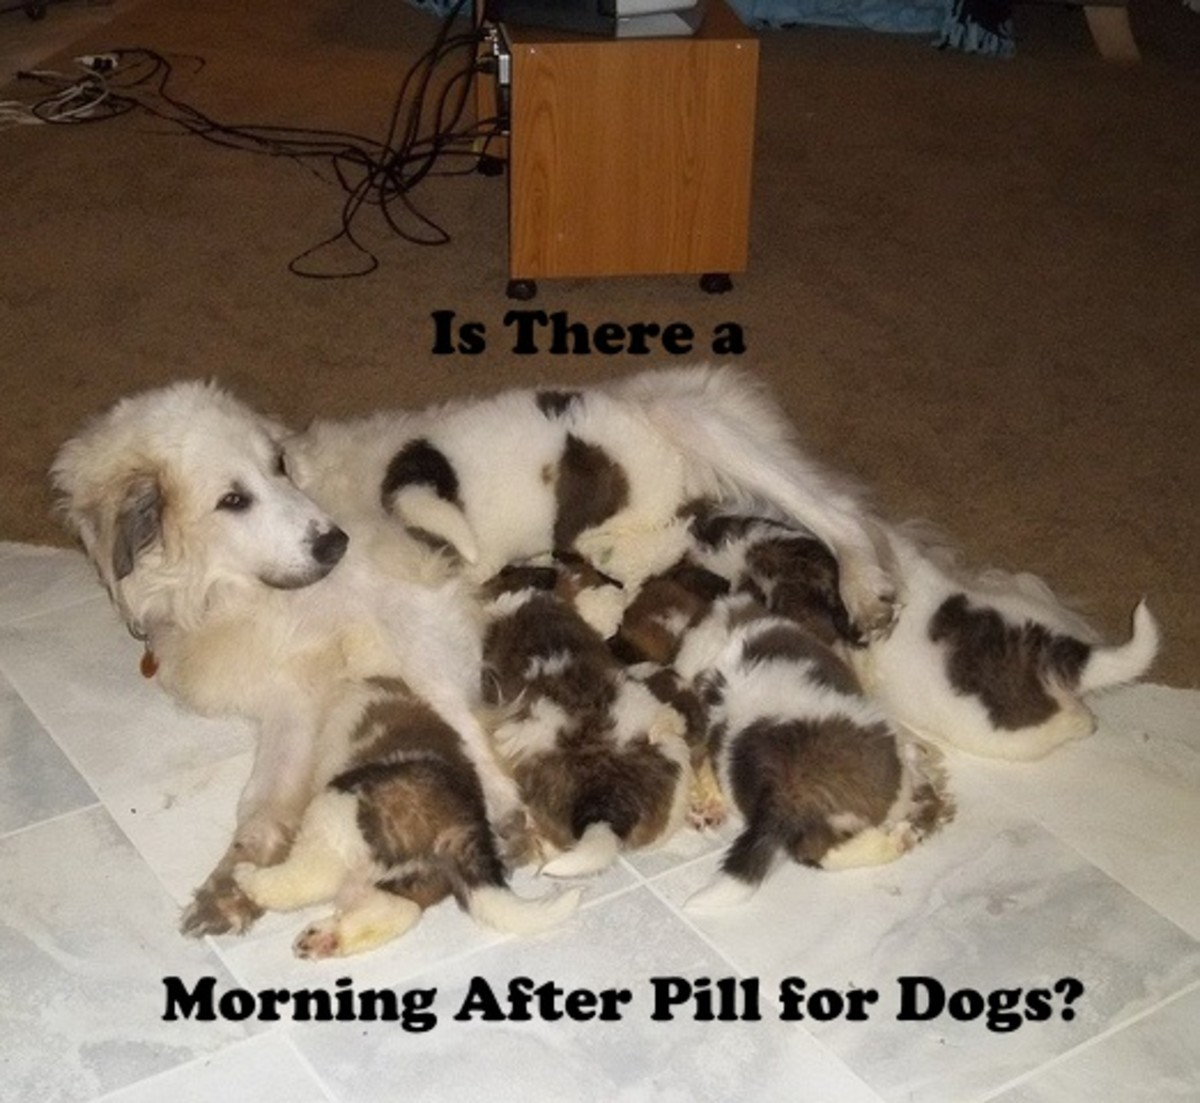 Alternative birth control methods are available to prevent pregnancy in dogs.